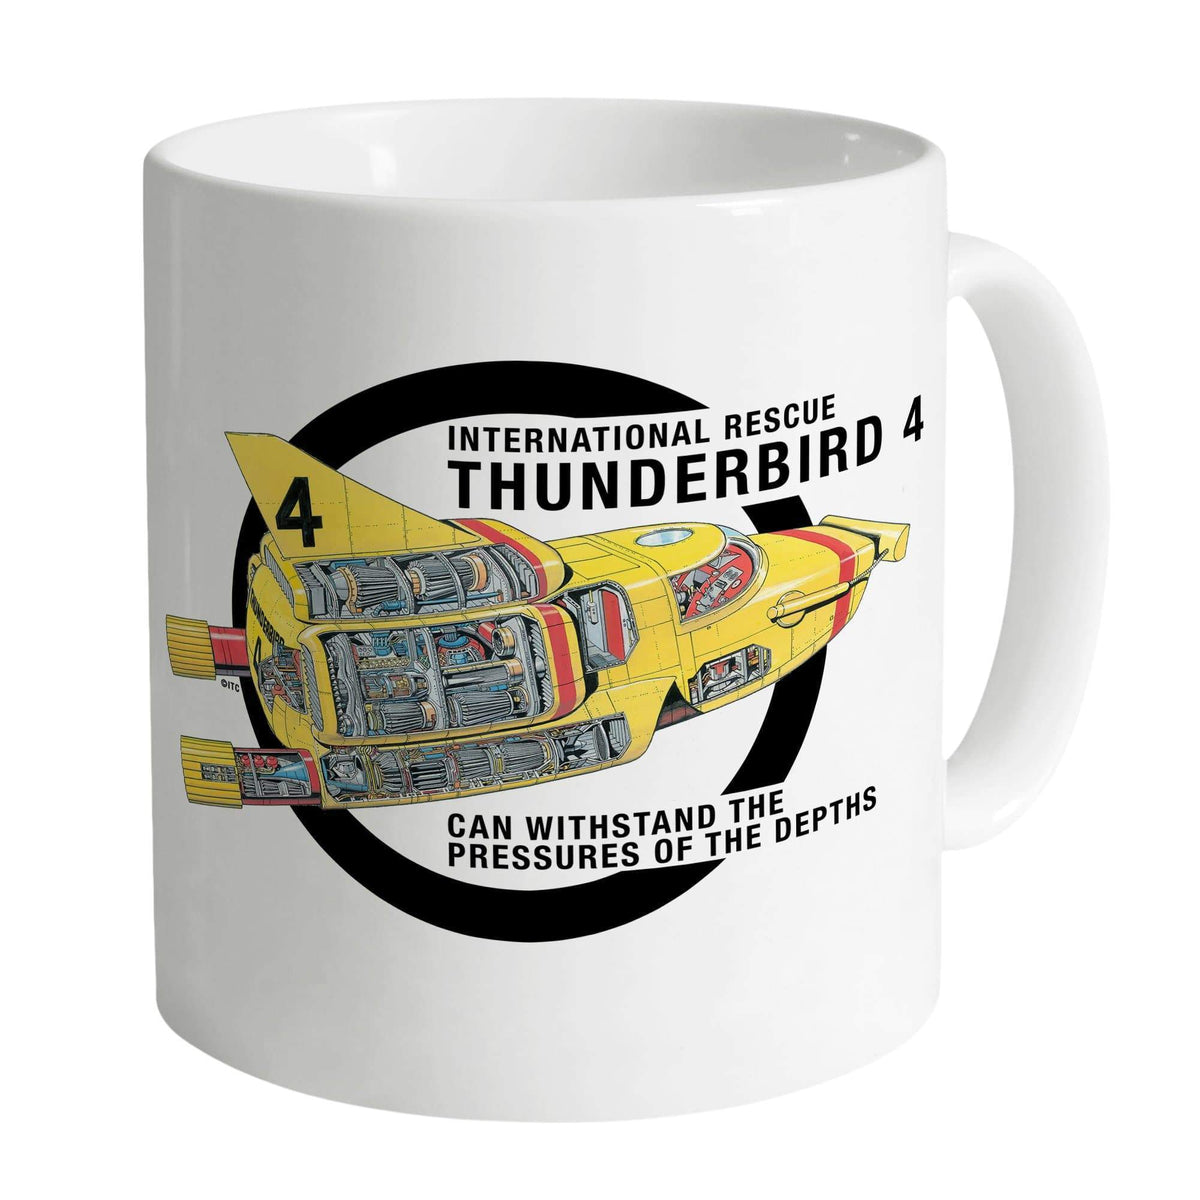 Thunderbird 4 Cutaway White Mug [Official & Exclusive] - The Gerry Anderson Store